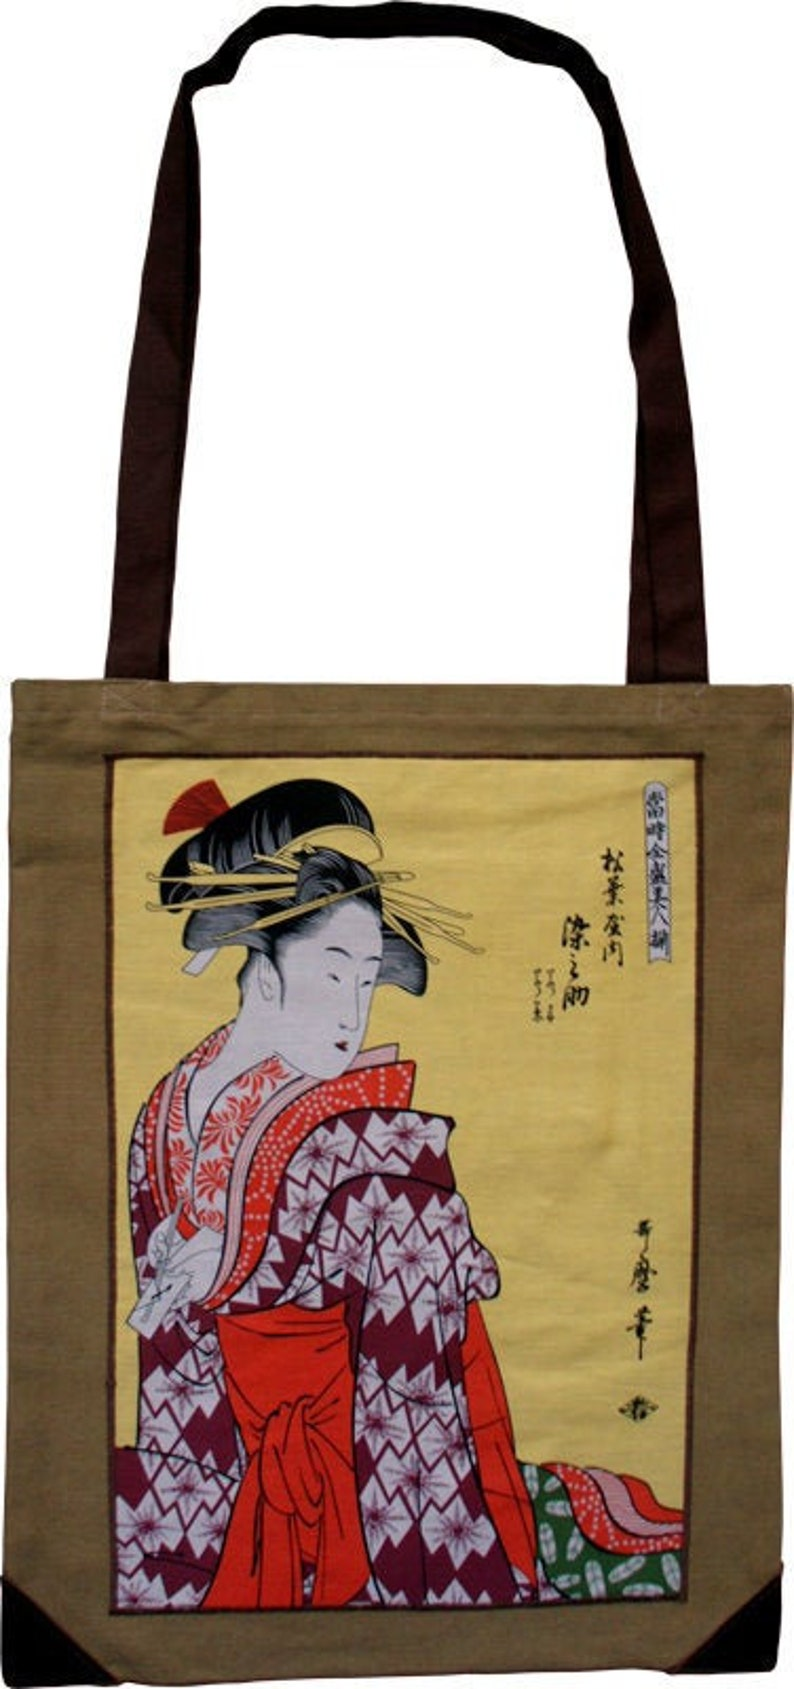 Bags with different Pictures Handmade Cotton Leather Japanese image 0